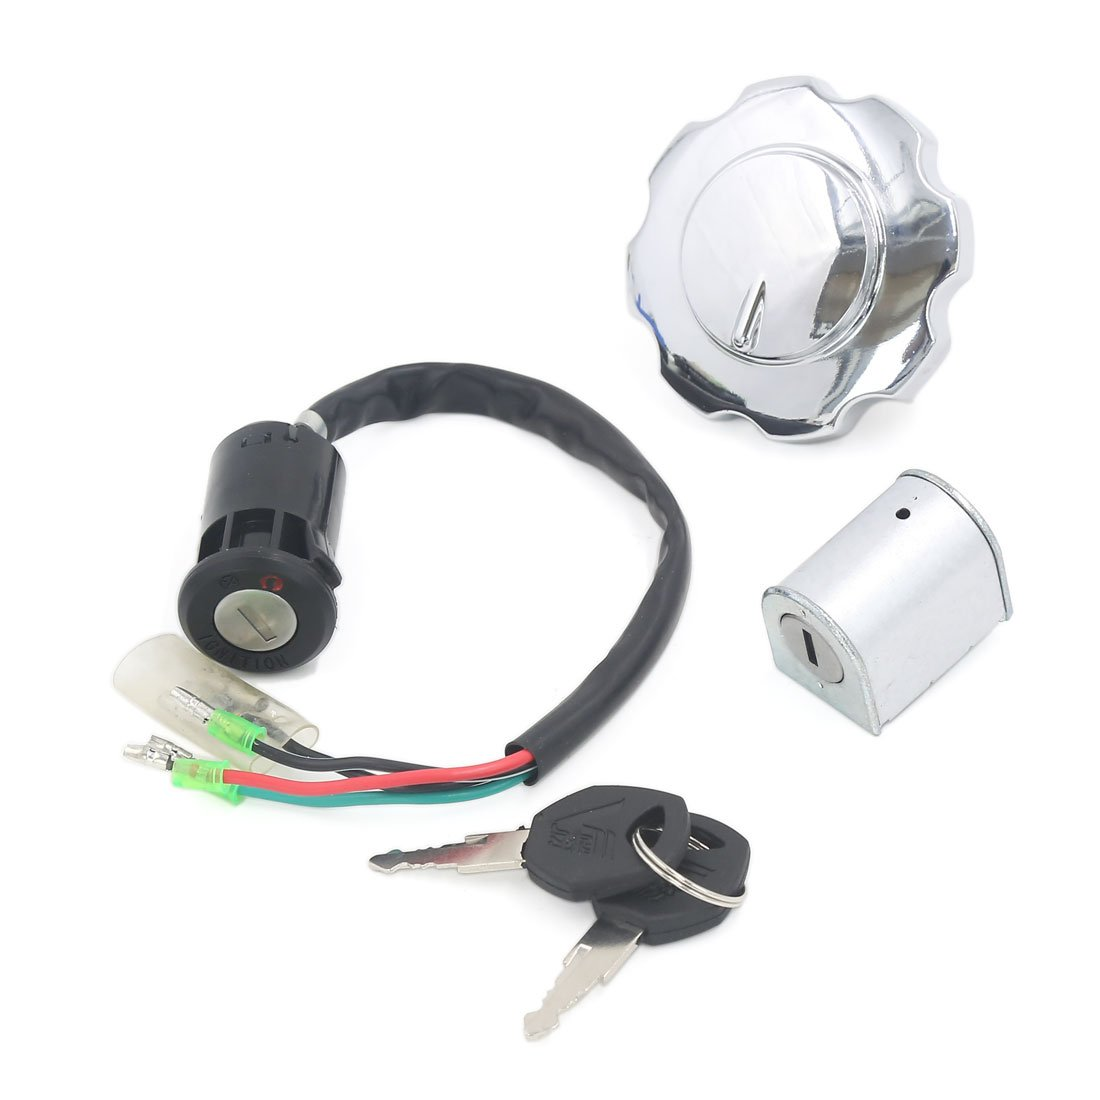 uxcell Motorcycle Ignition Switch Fuel Tank Cap Lock Set w Keys by uxcell